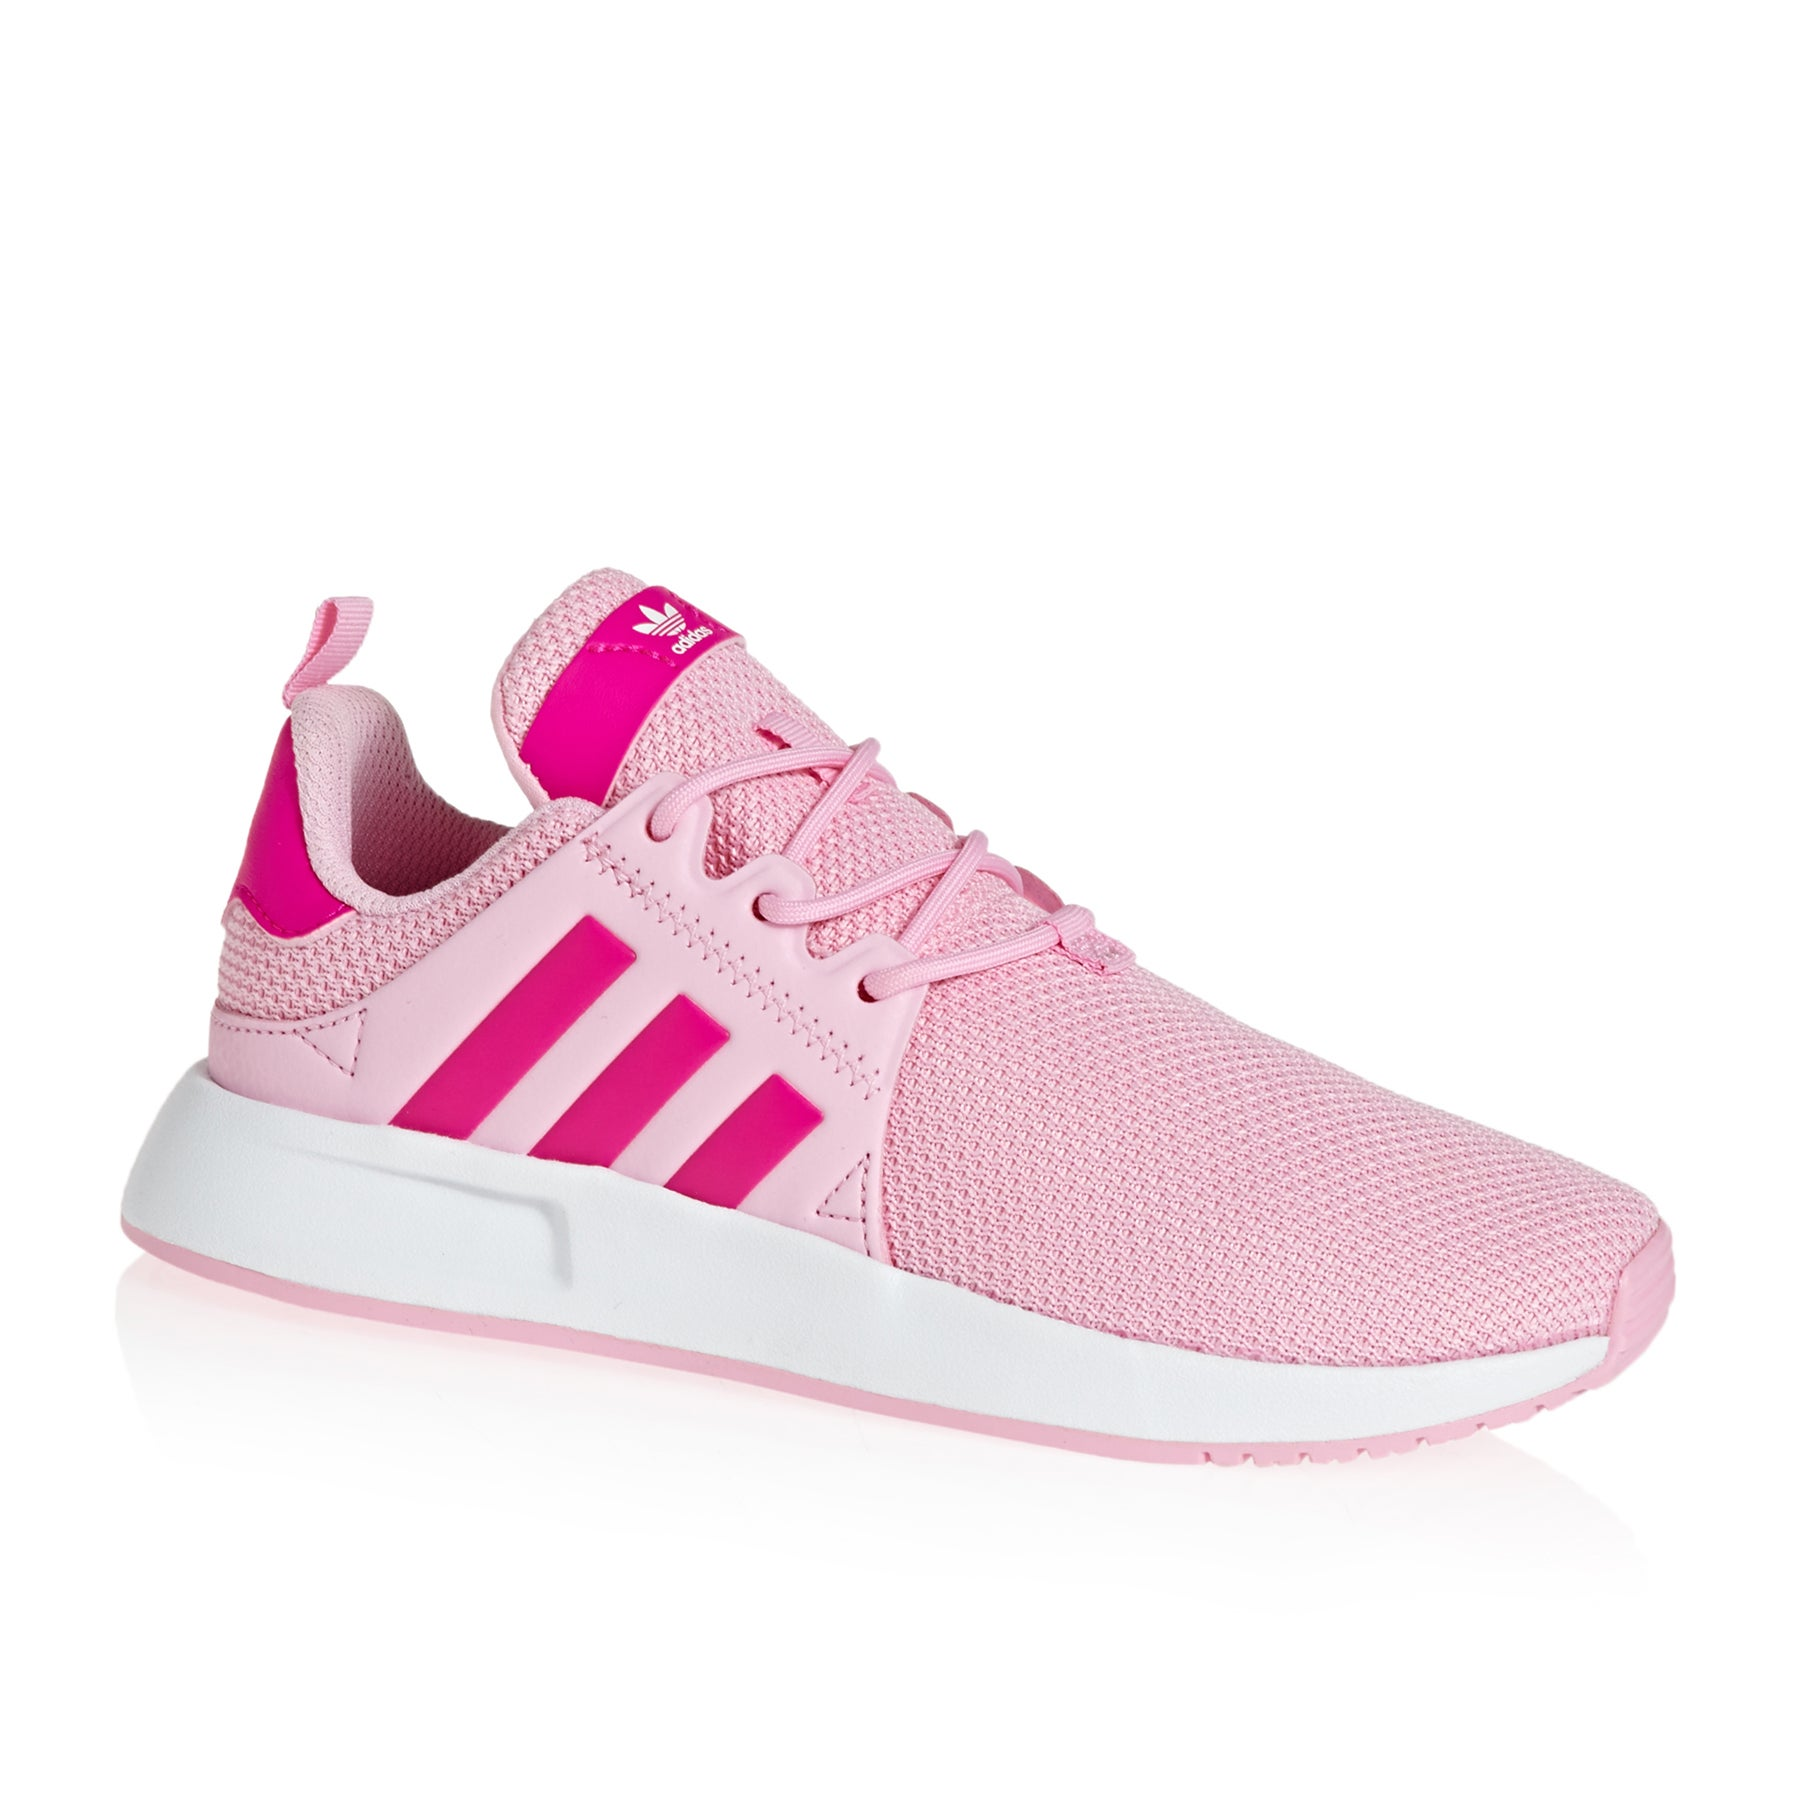 Adidas Originals XPLR C Girls Shoes available from Surfdome